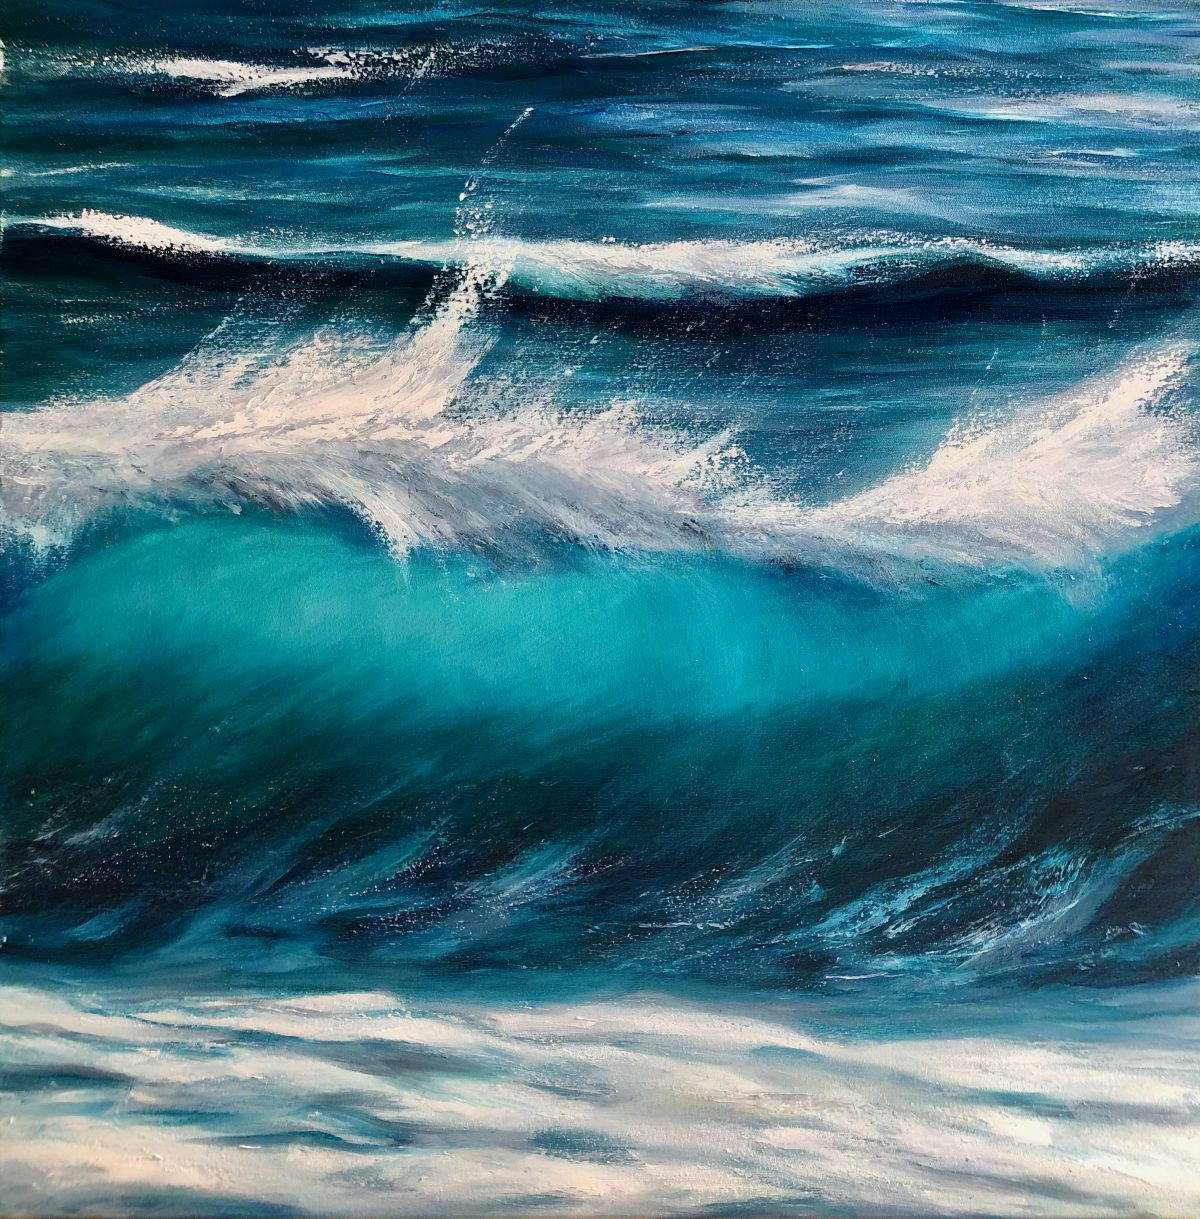 oil painting of a turquoise wave breaking